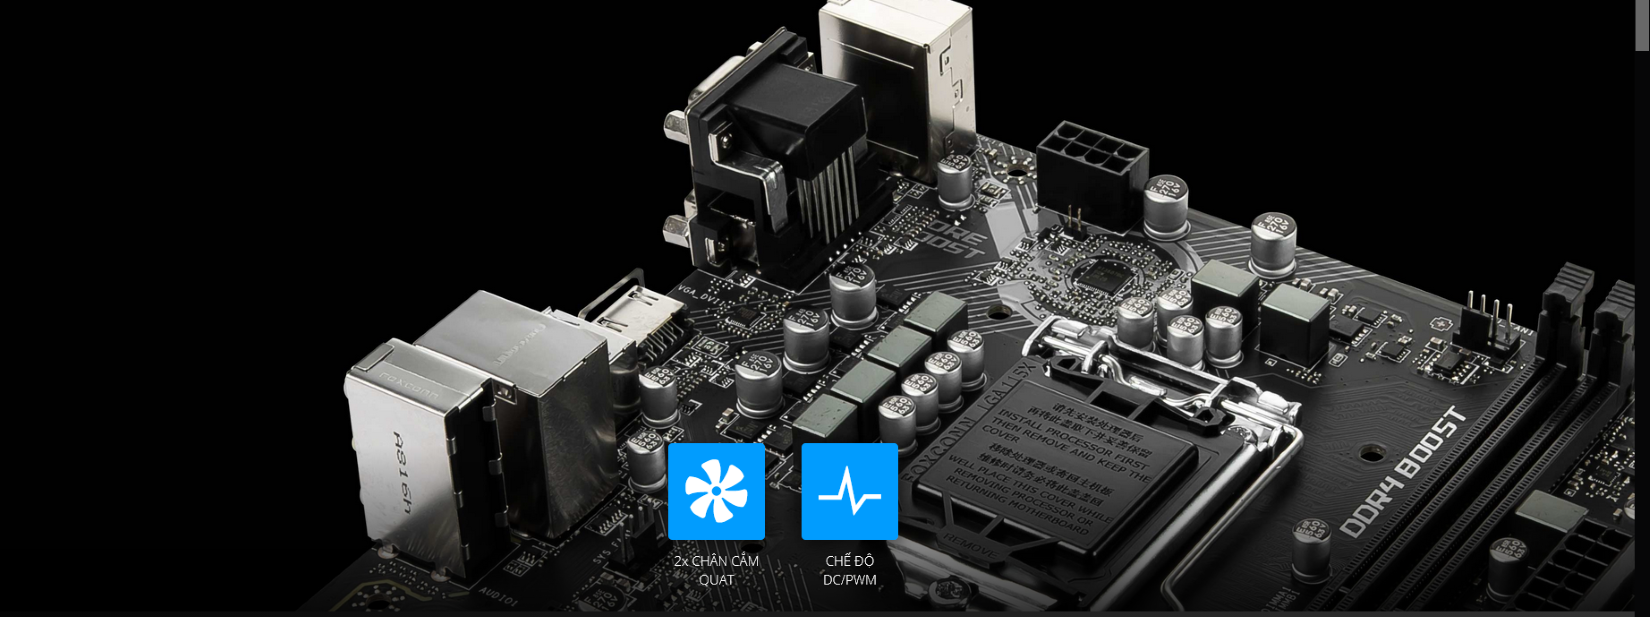 Thiet Ke Mainboard MSI H310M PRO-VDH PLUS